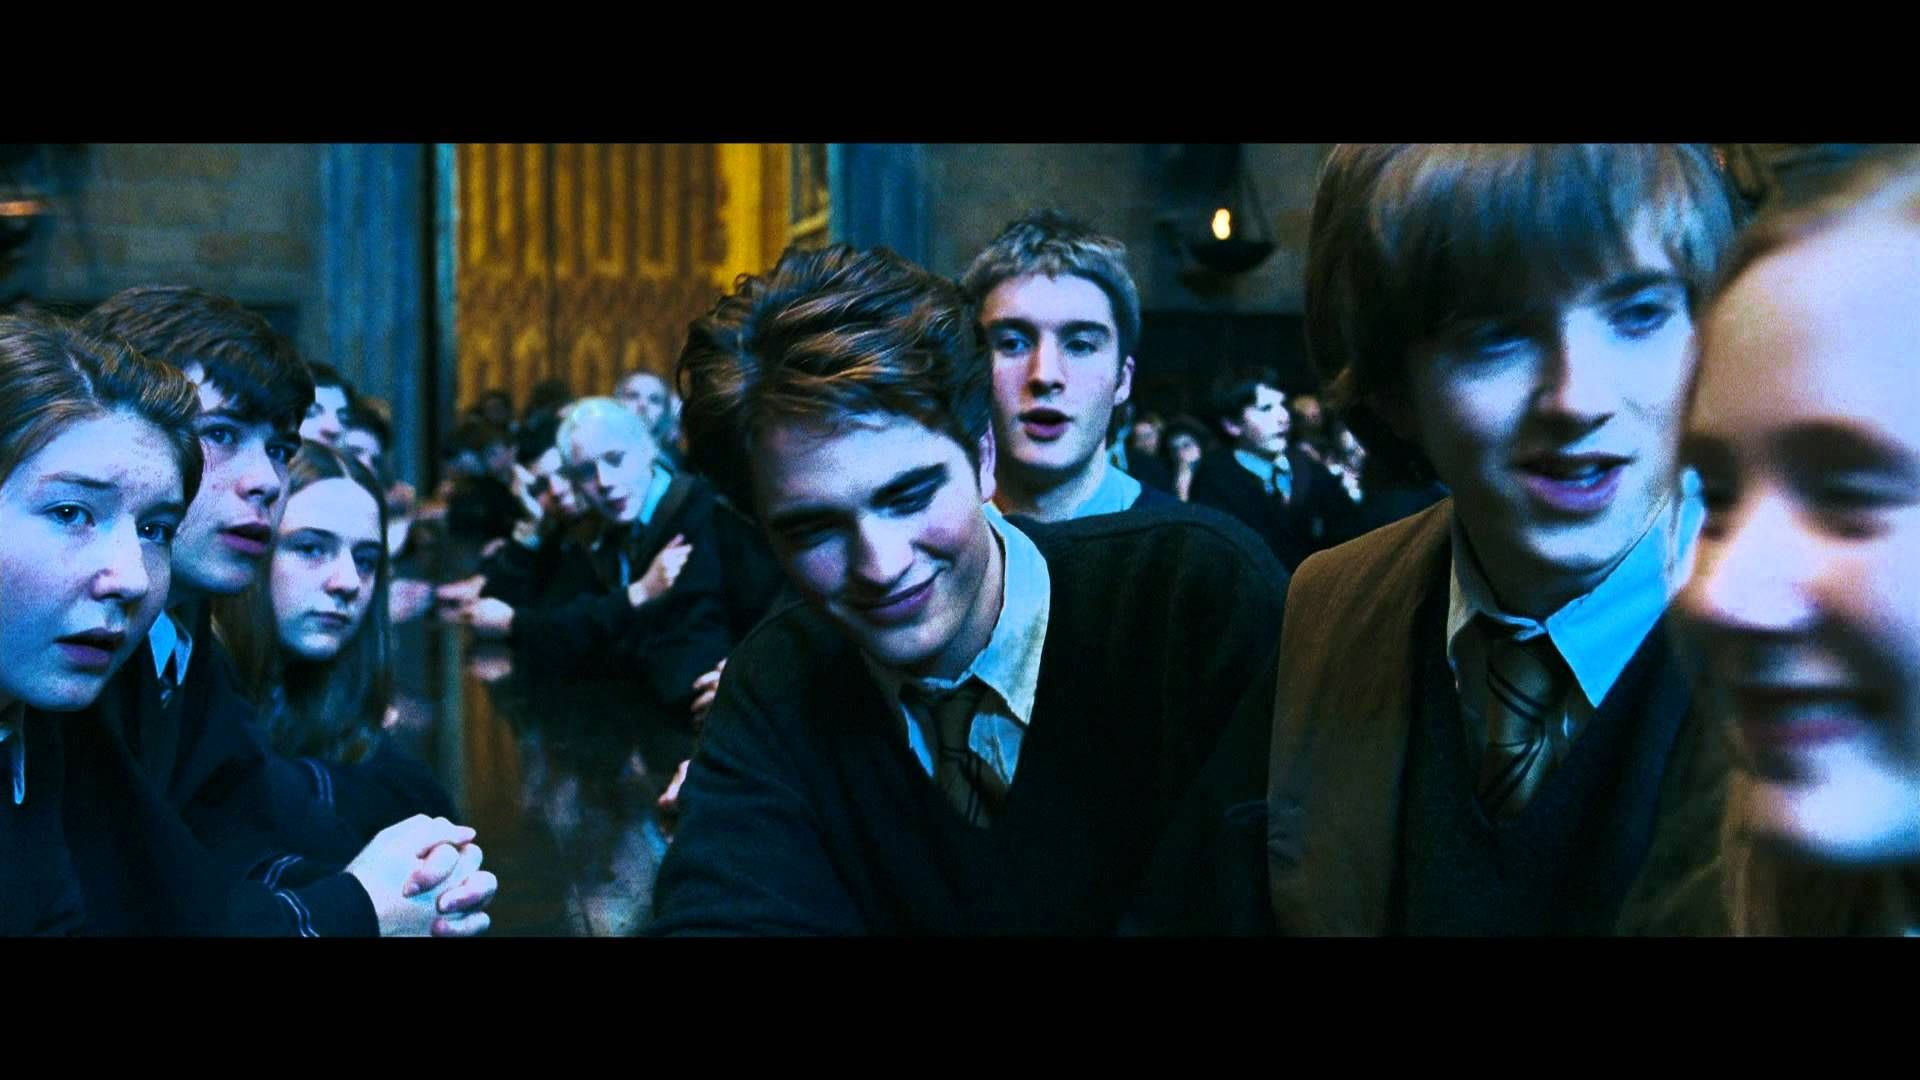 Harry Potter And The Goblet Of Fire Trailer Sci Fi Movies Harry Potter Fandom Goblet Of Fire